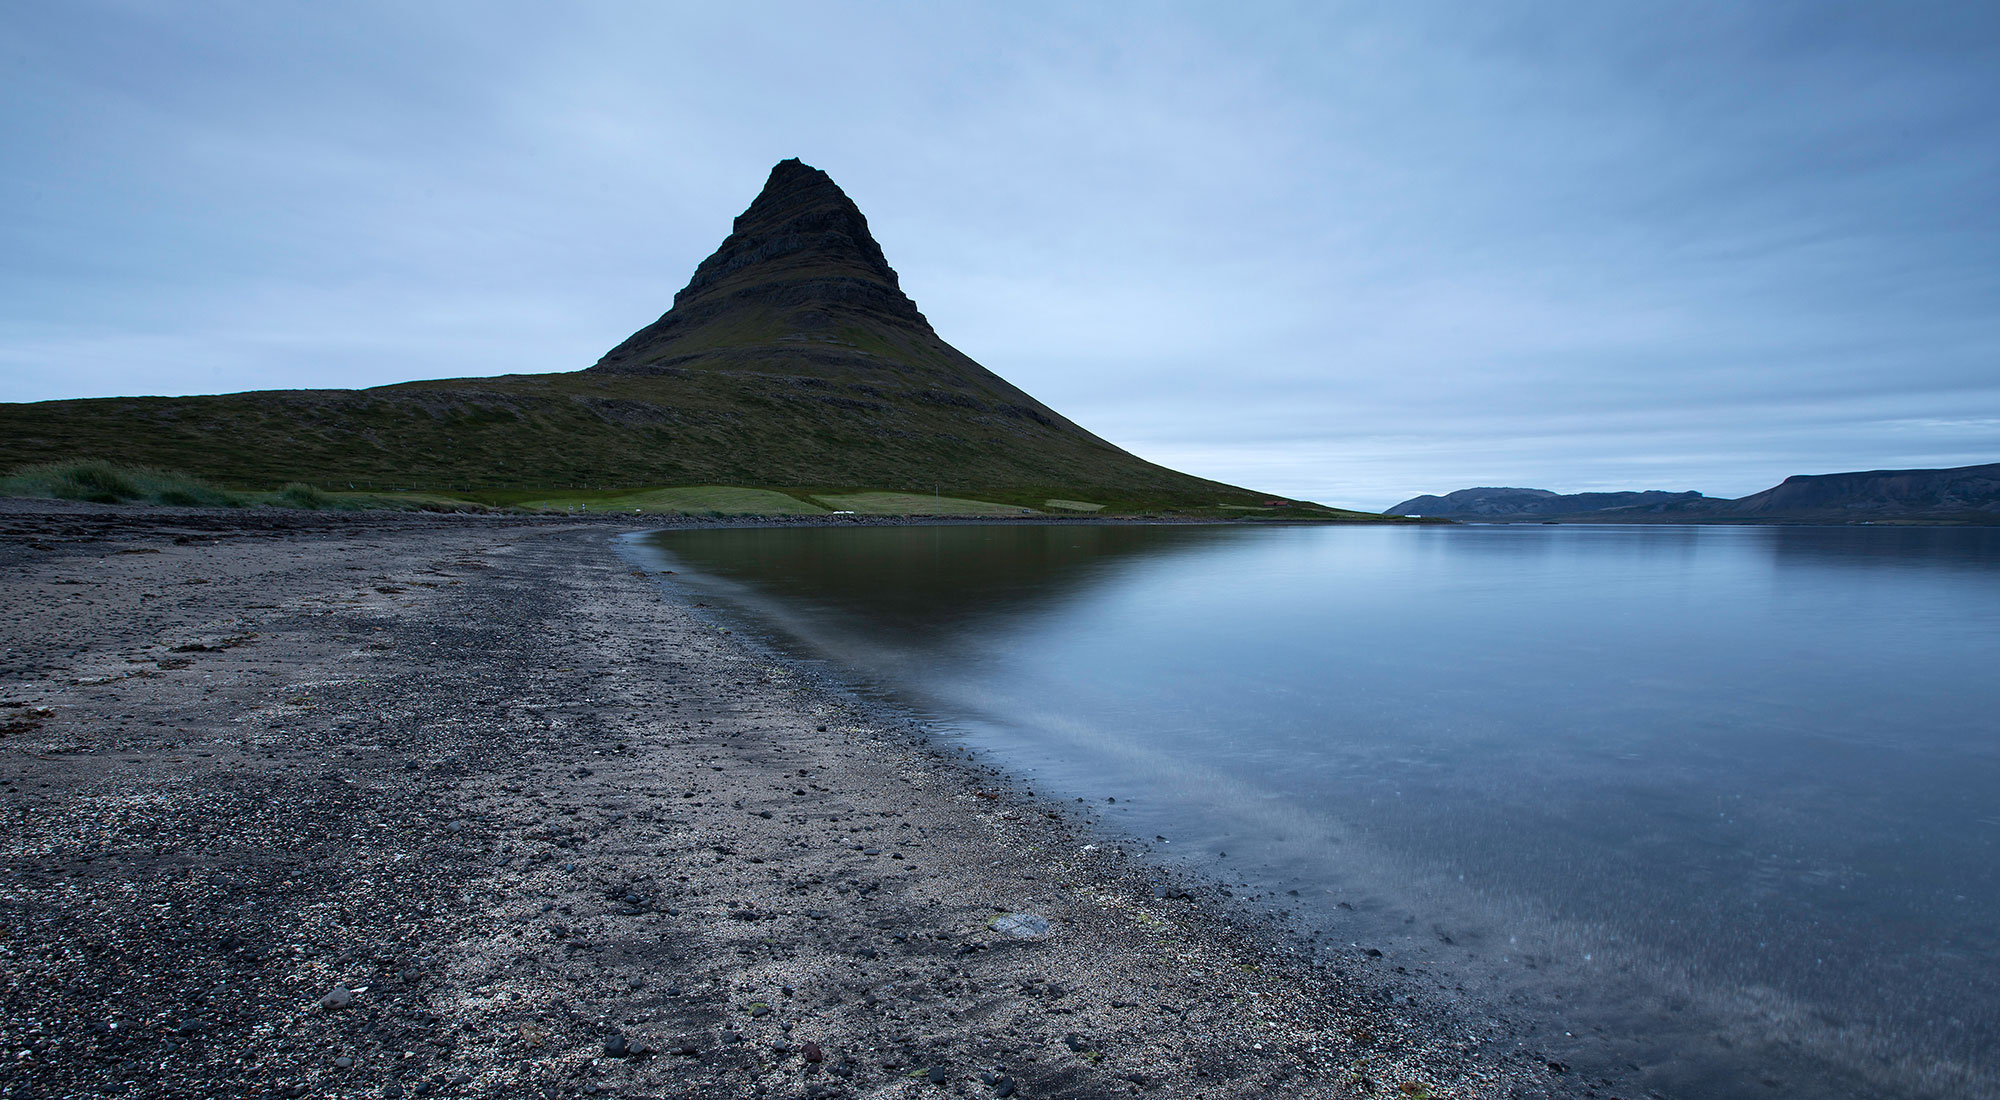 Kayak Iceland Kirkjufell Kayaking An Amazing Adventure